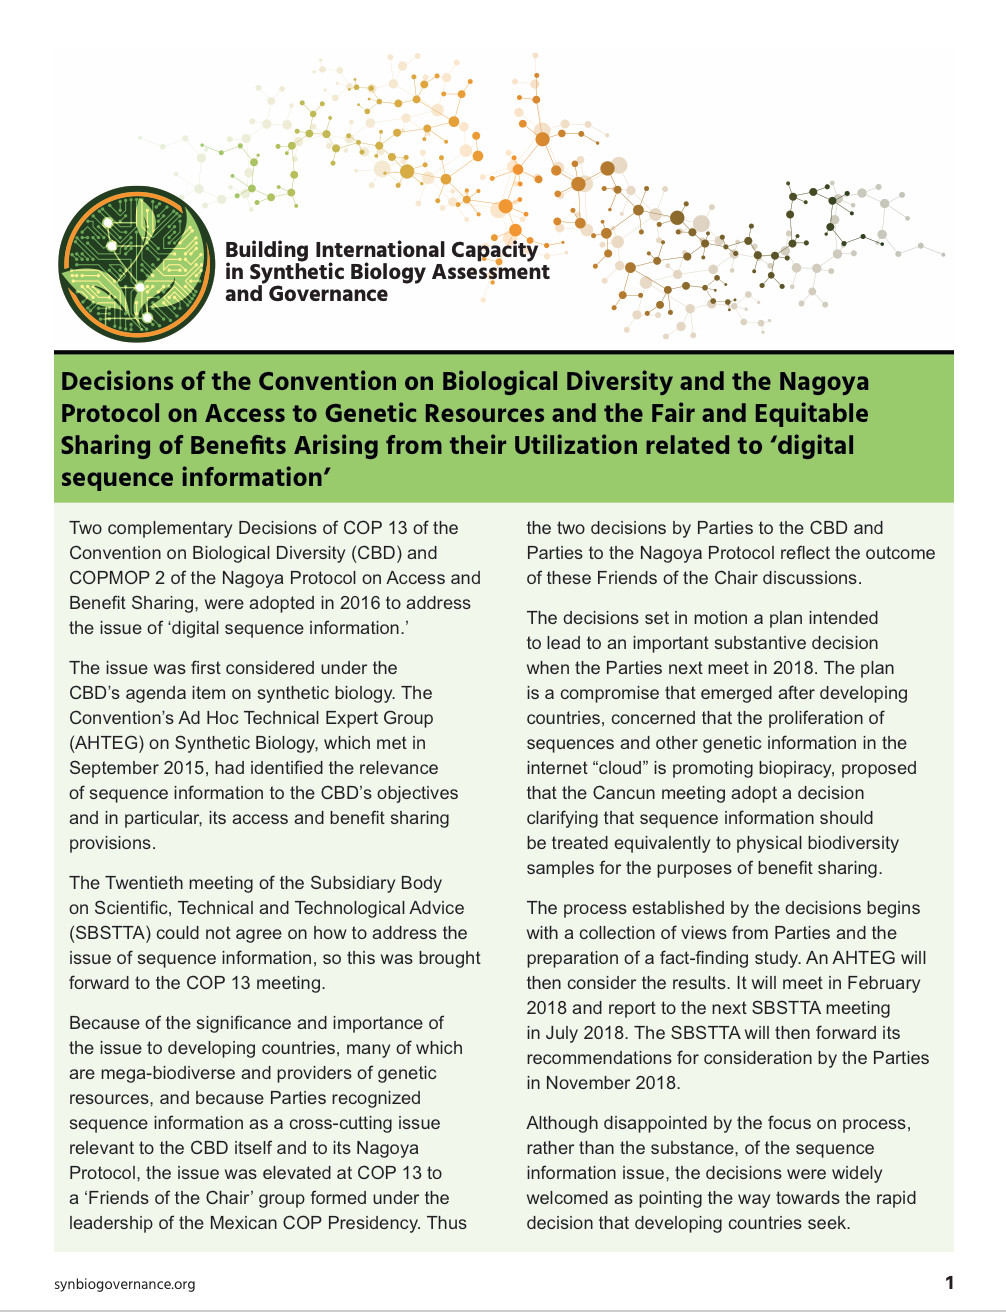 Compilations of Convention on Biological Diversity Decisions on Digital Sequence Information on Genetic Resources